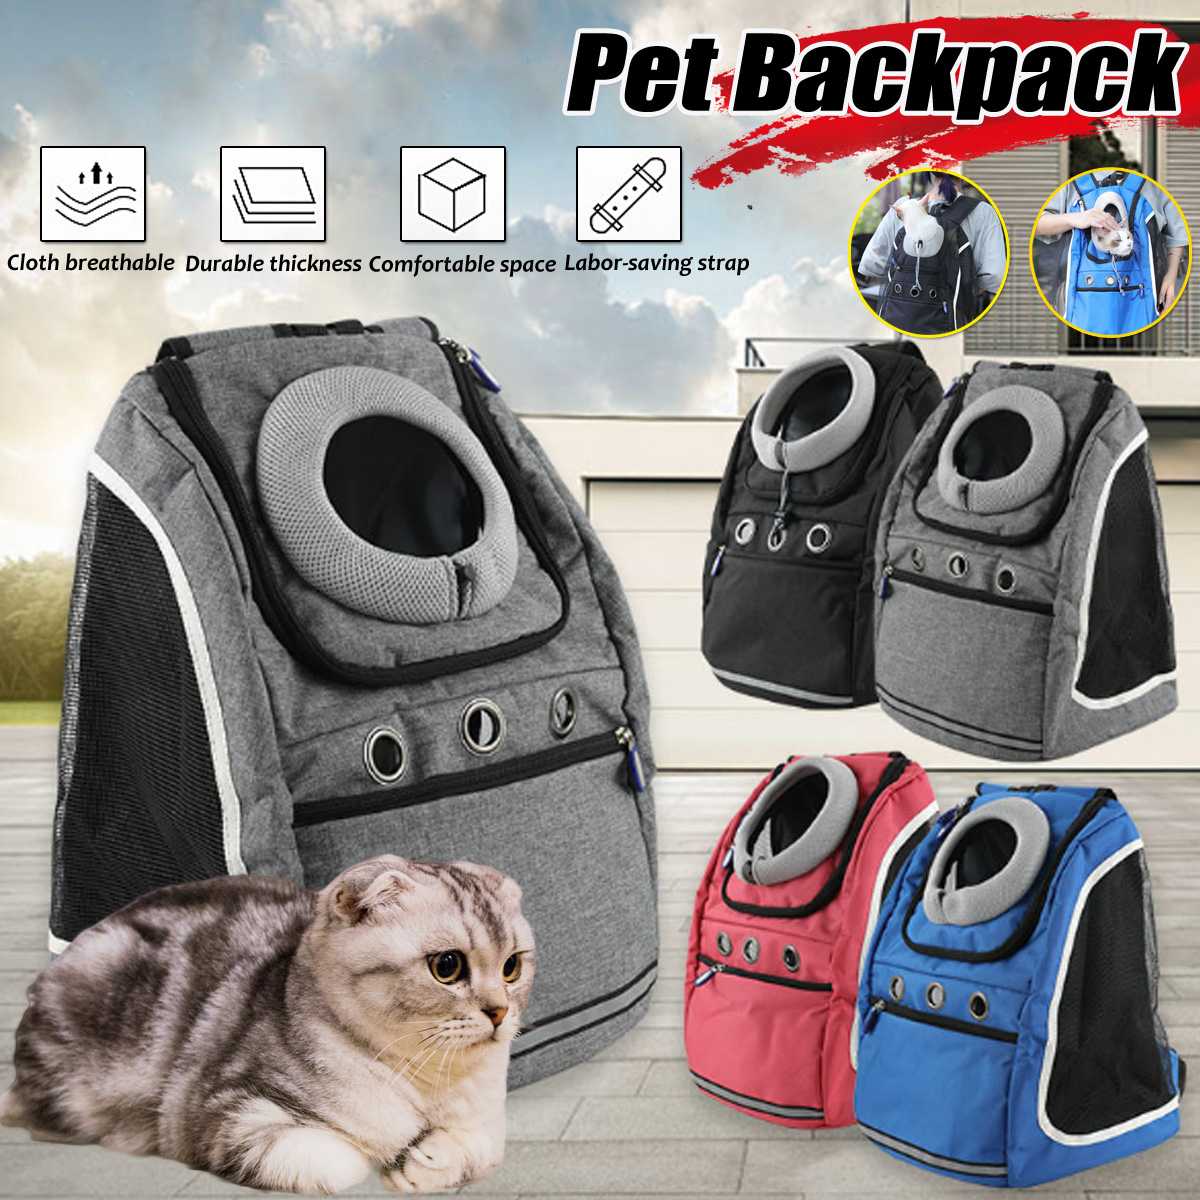 Oxford Cloth Pet Backpack Dog Cat Travel Breathable Shoulder Bag Carry Bag Max load 10/13kg